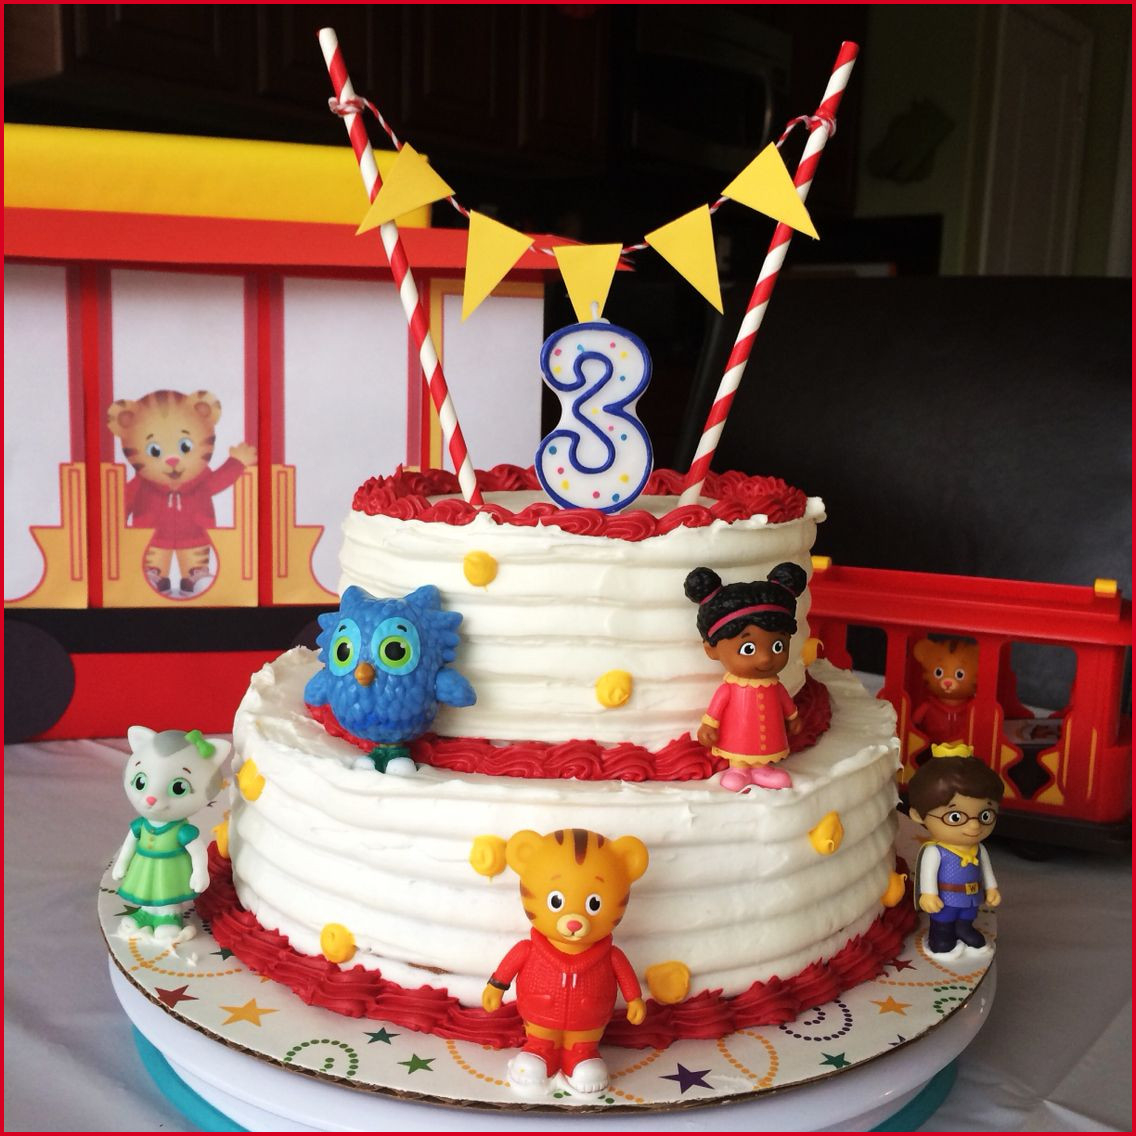 Daniel Tiger Birthday Cake Awesome Daniel Tiger Birthday Cake Pics Of Birthday Ideas 29828